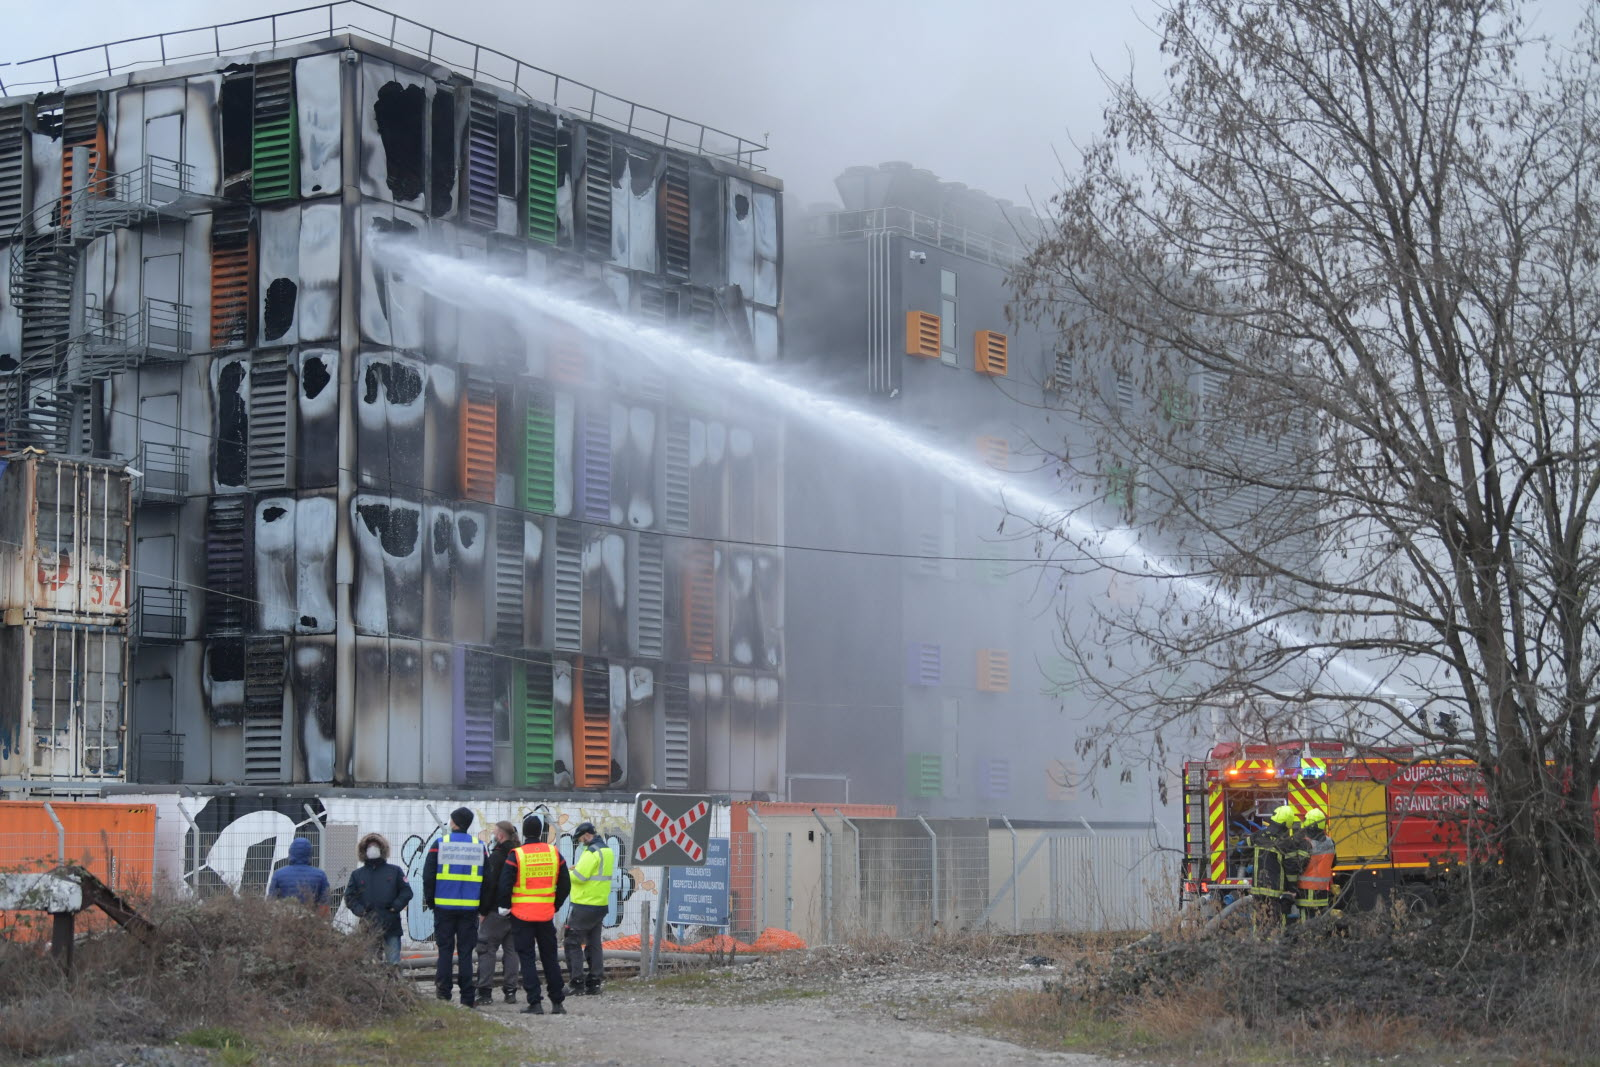 ovh-strasbourg-datacenter-fire-containers.jpg